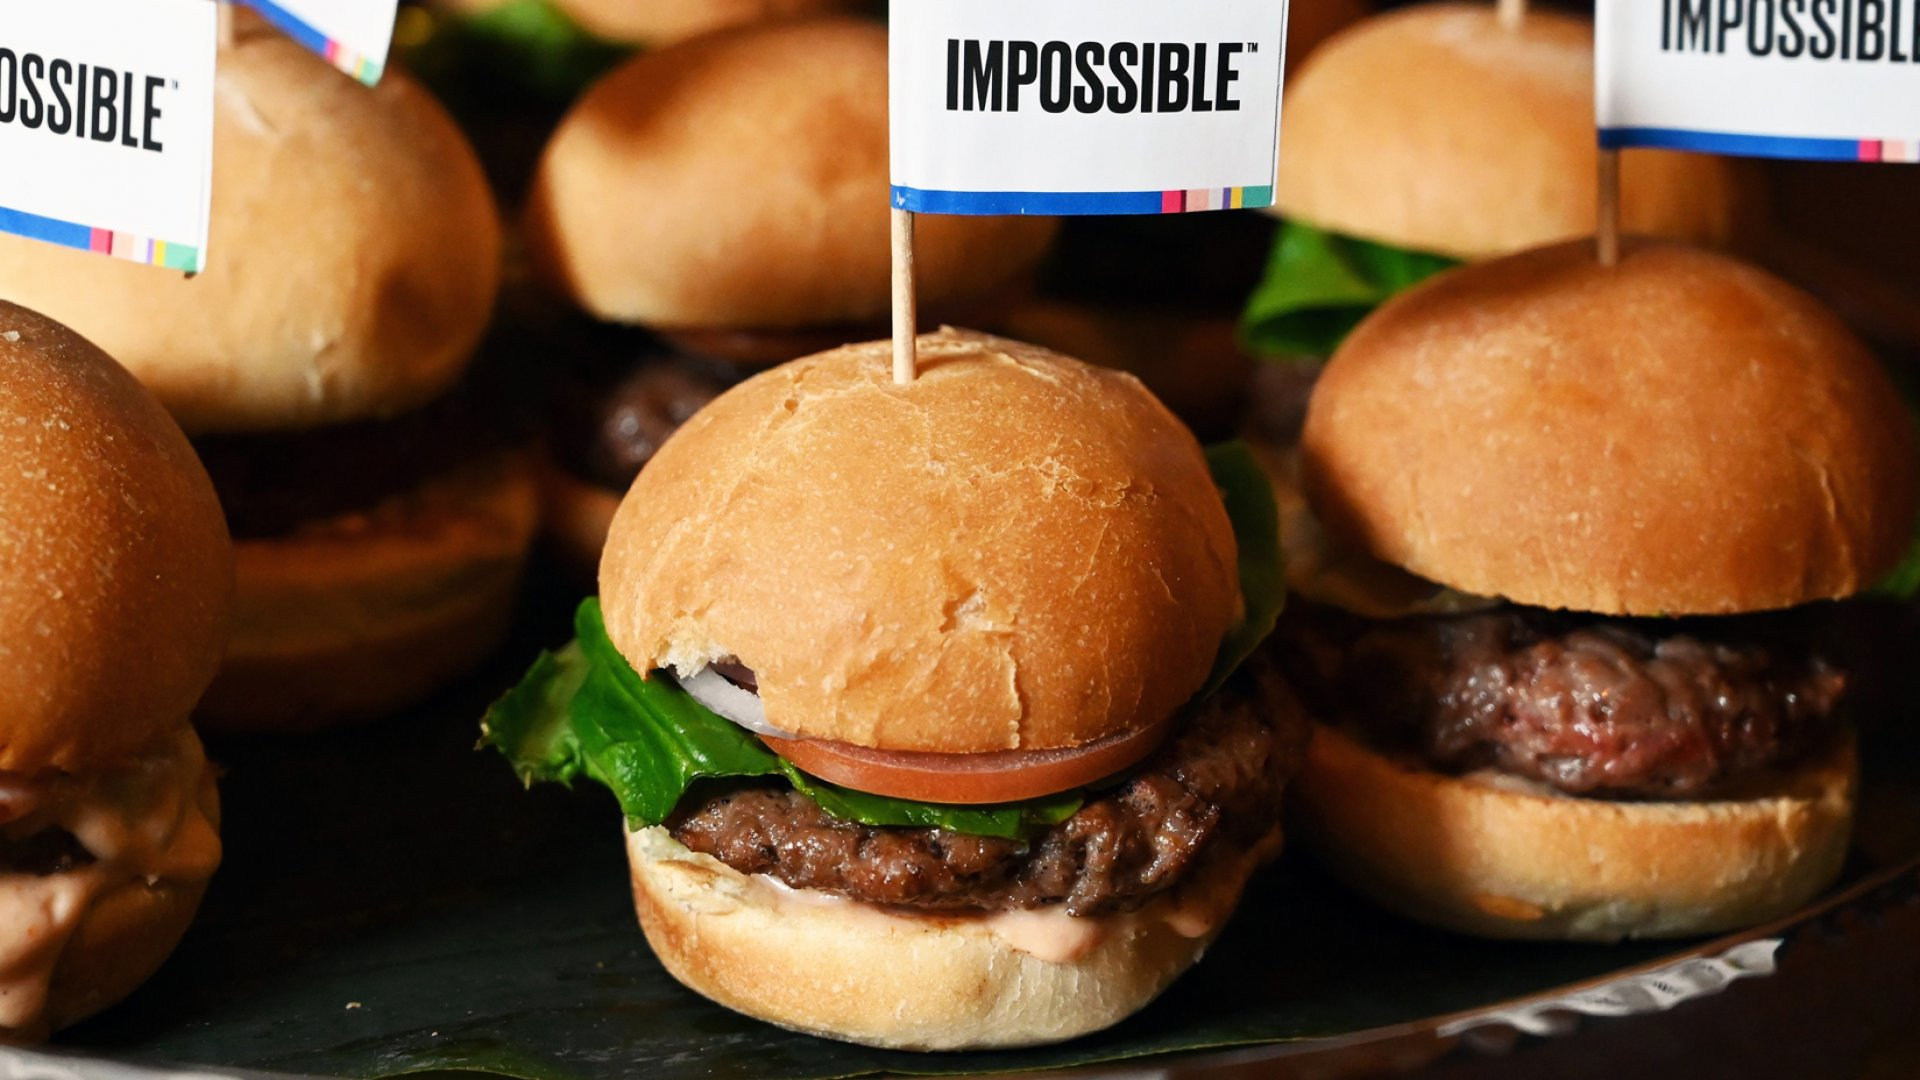 Impossible Foods' Founder Didn't Want to Be an Entrepreneur, but His $2 Billion Idea Was Hard to Resist